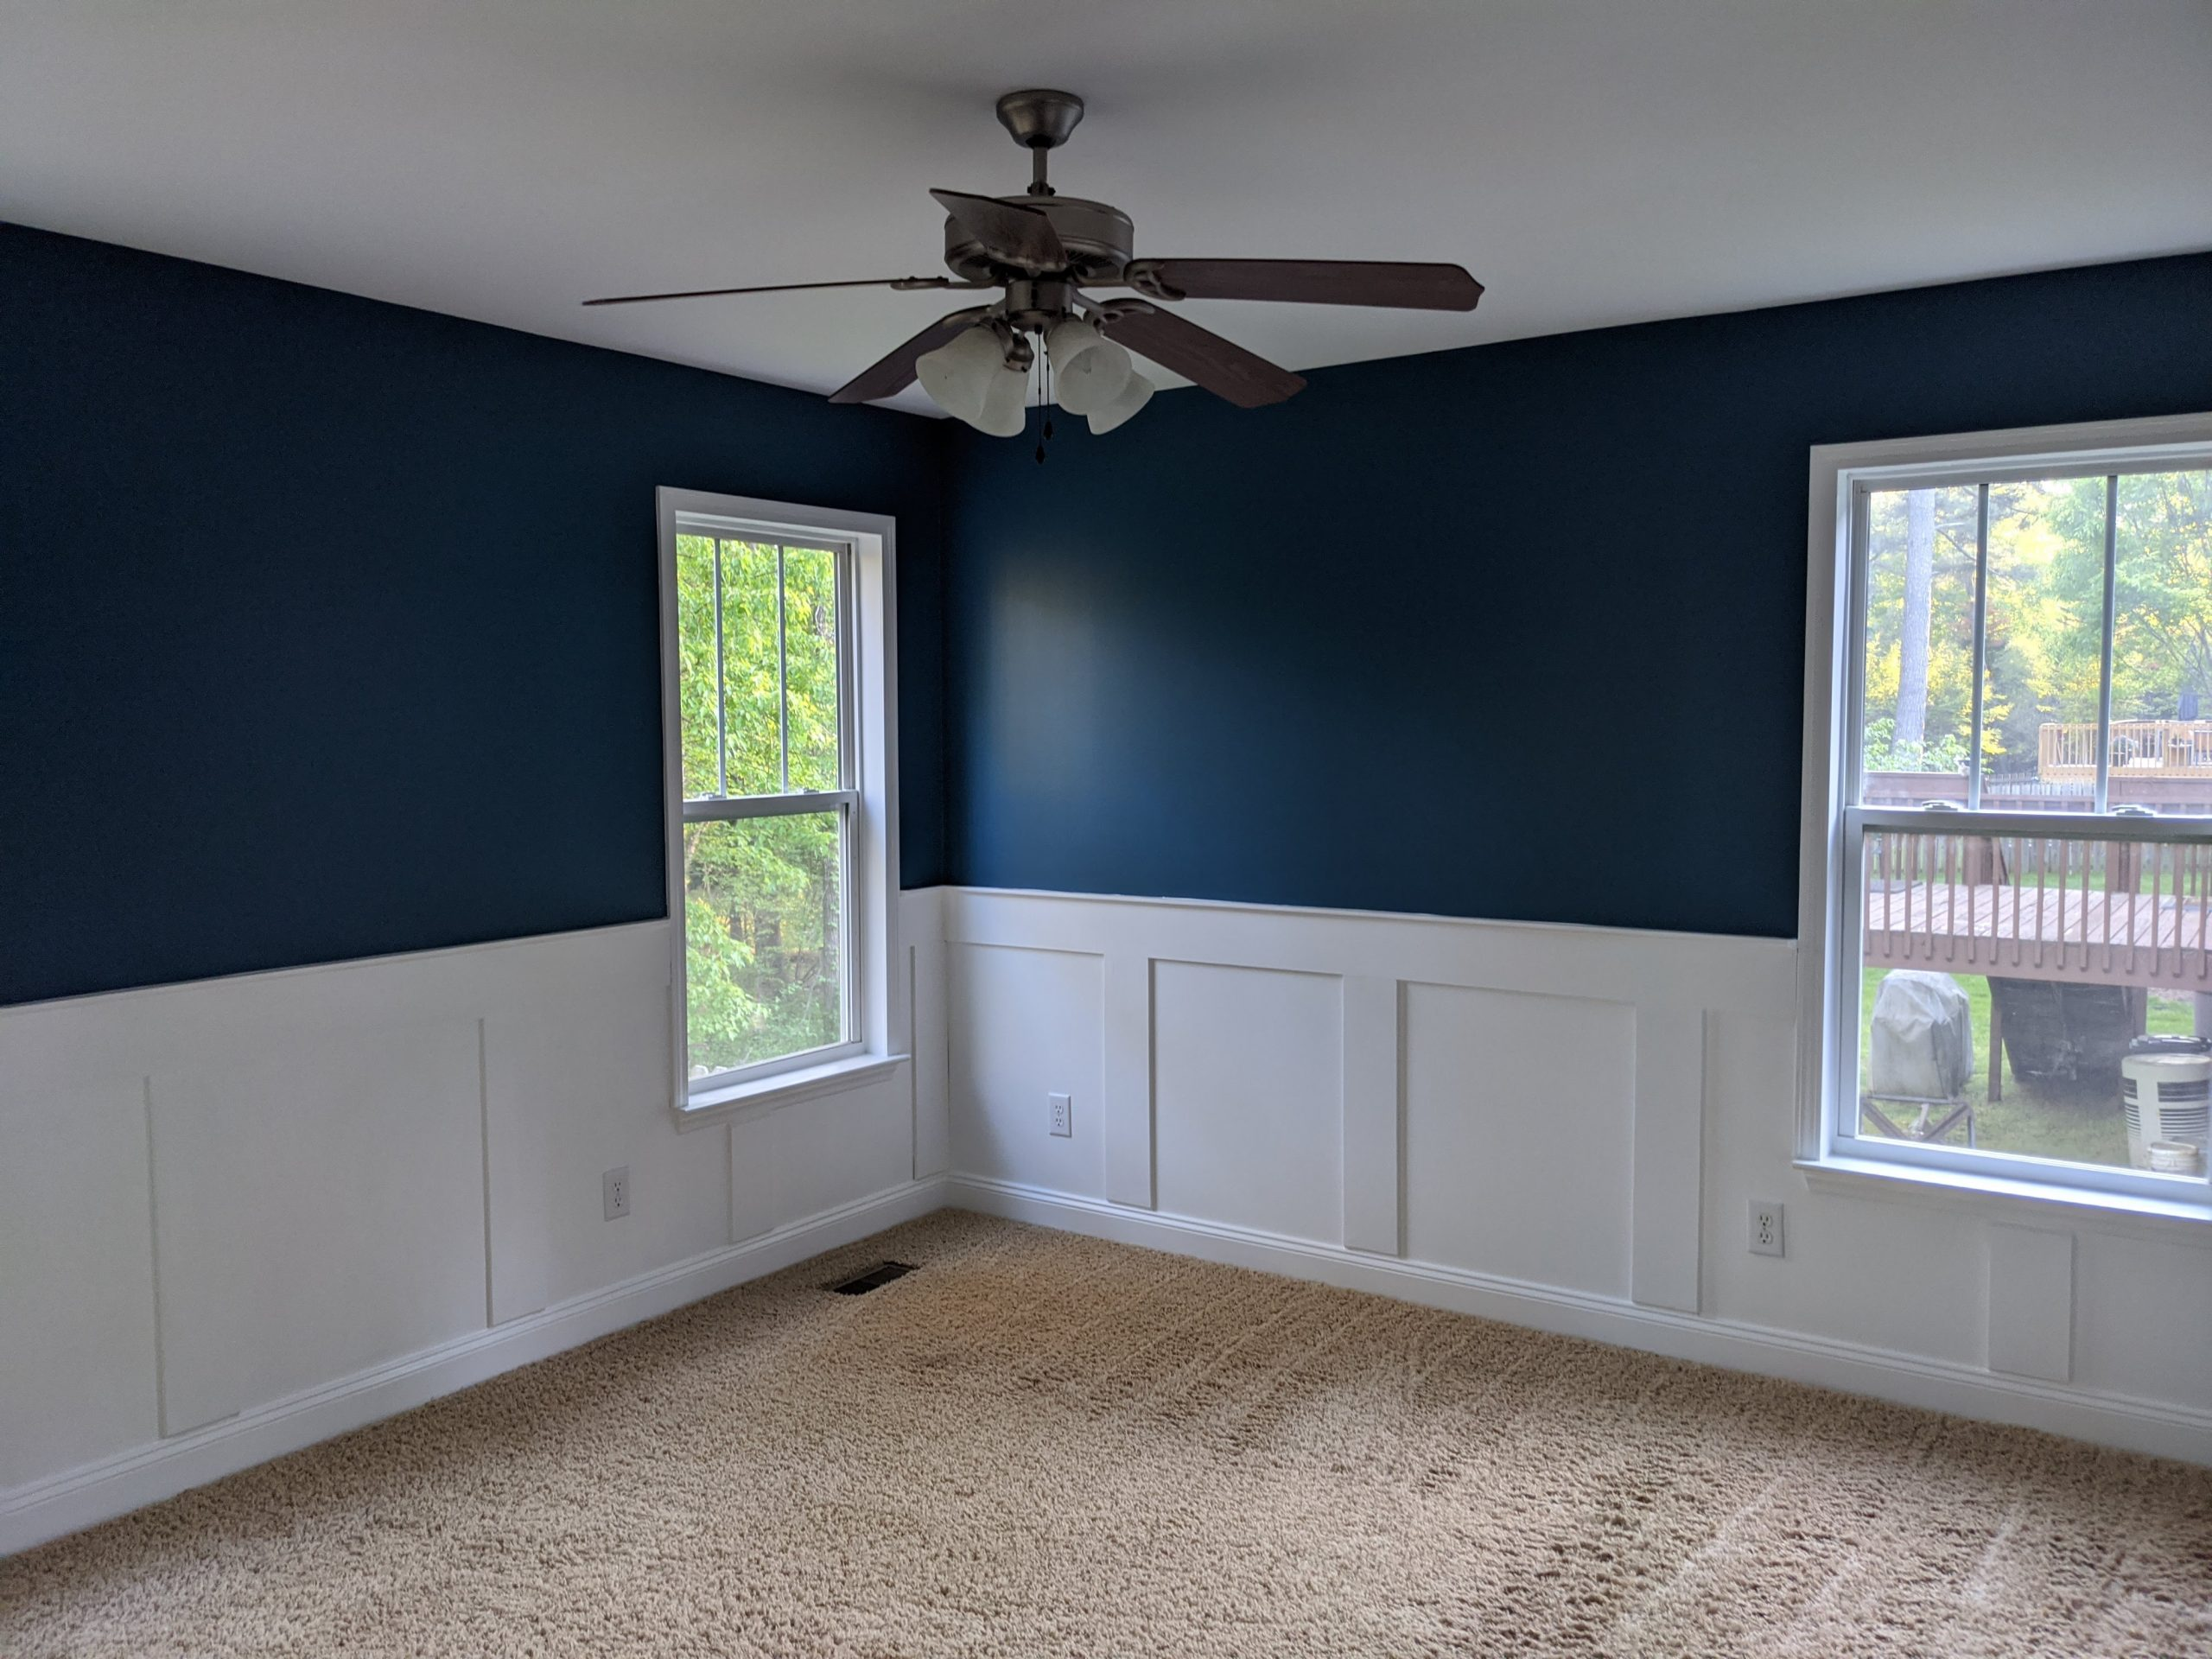 What is Wainscoting - Paint Covered Overalls - Durham North Carolina